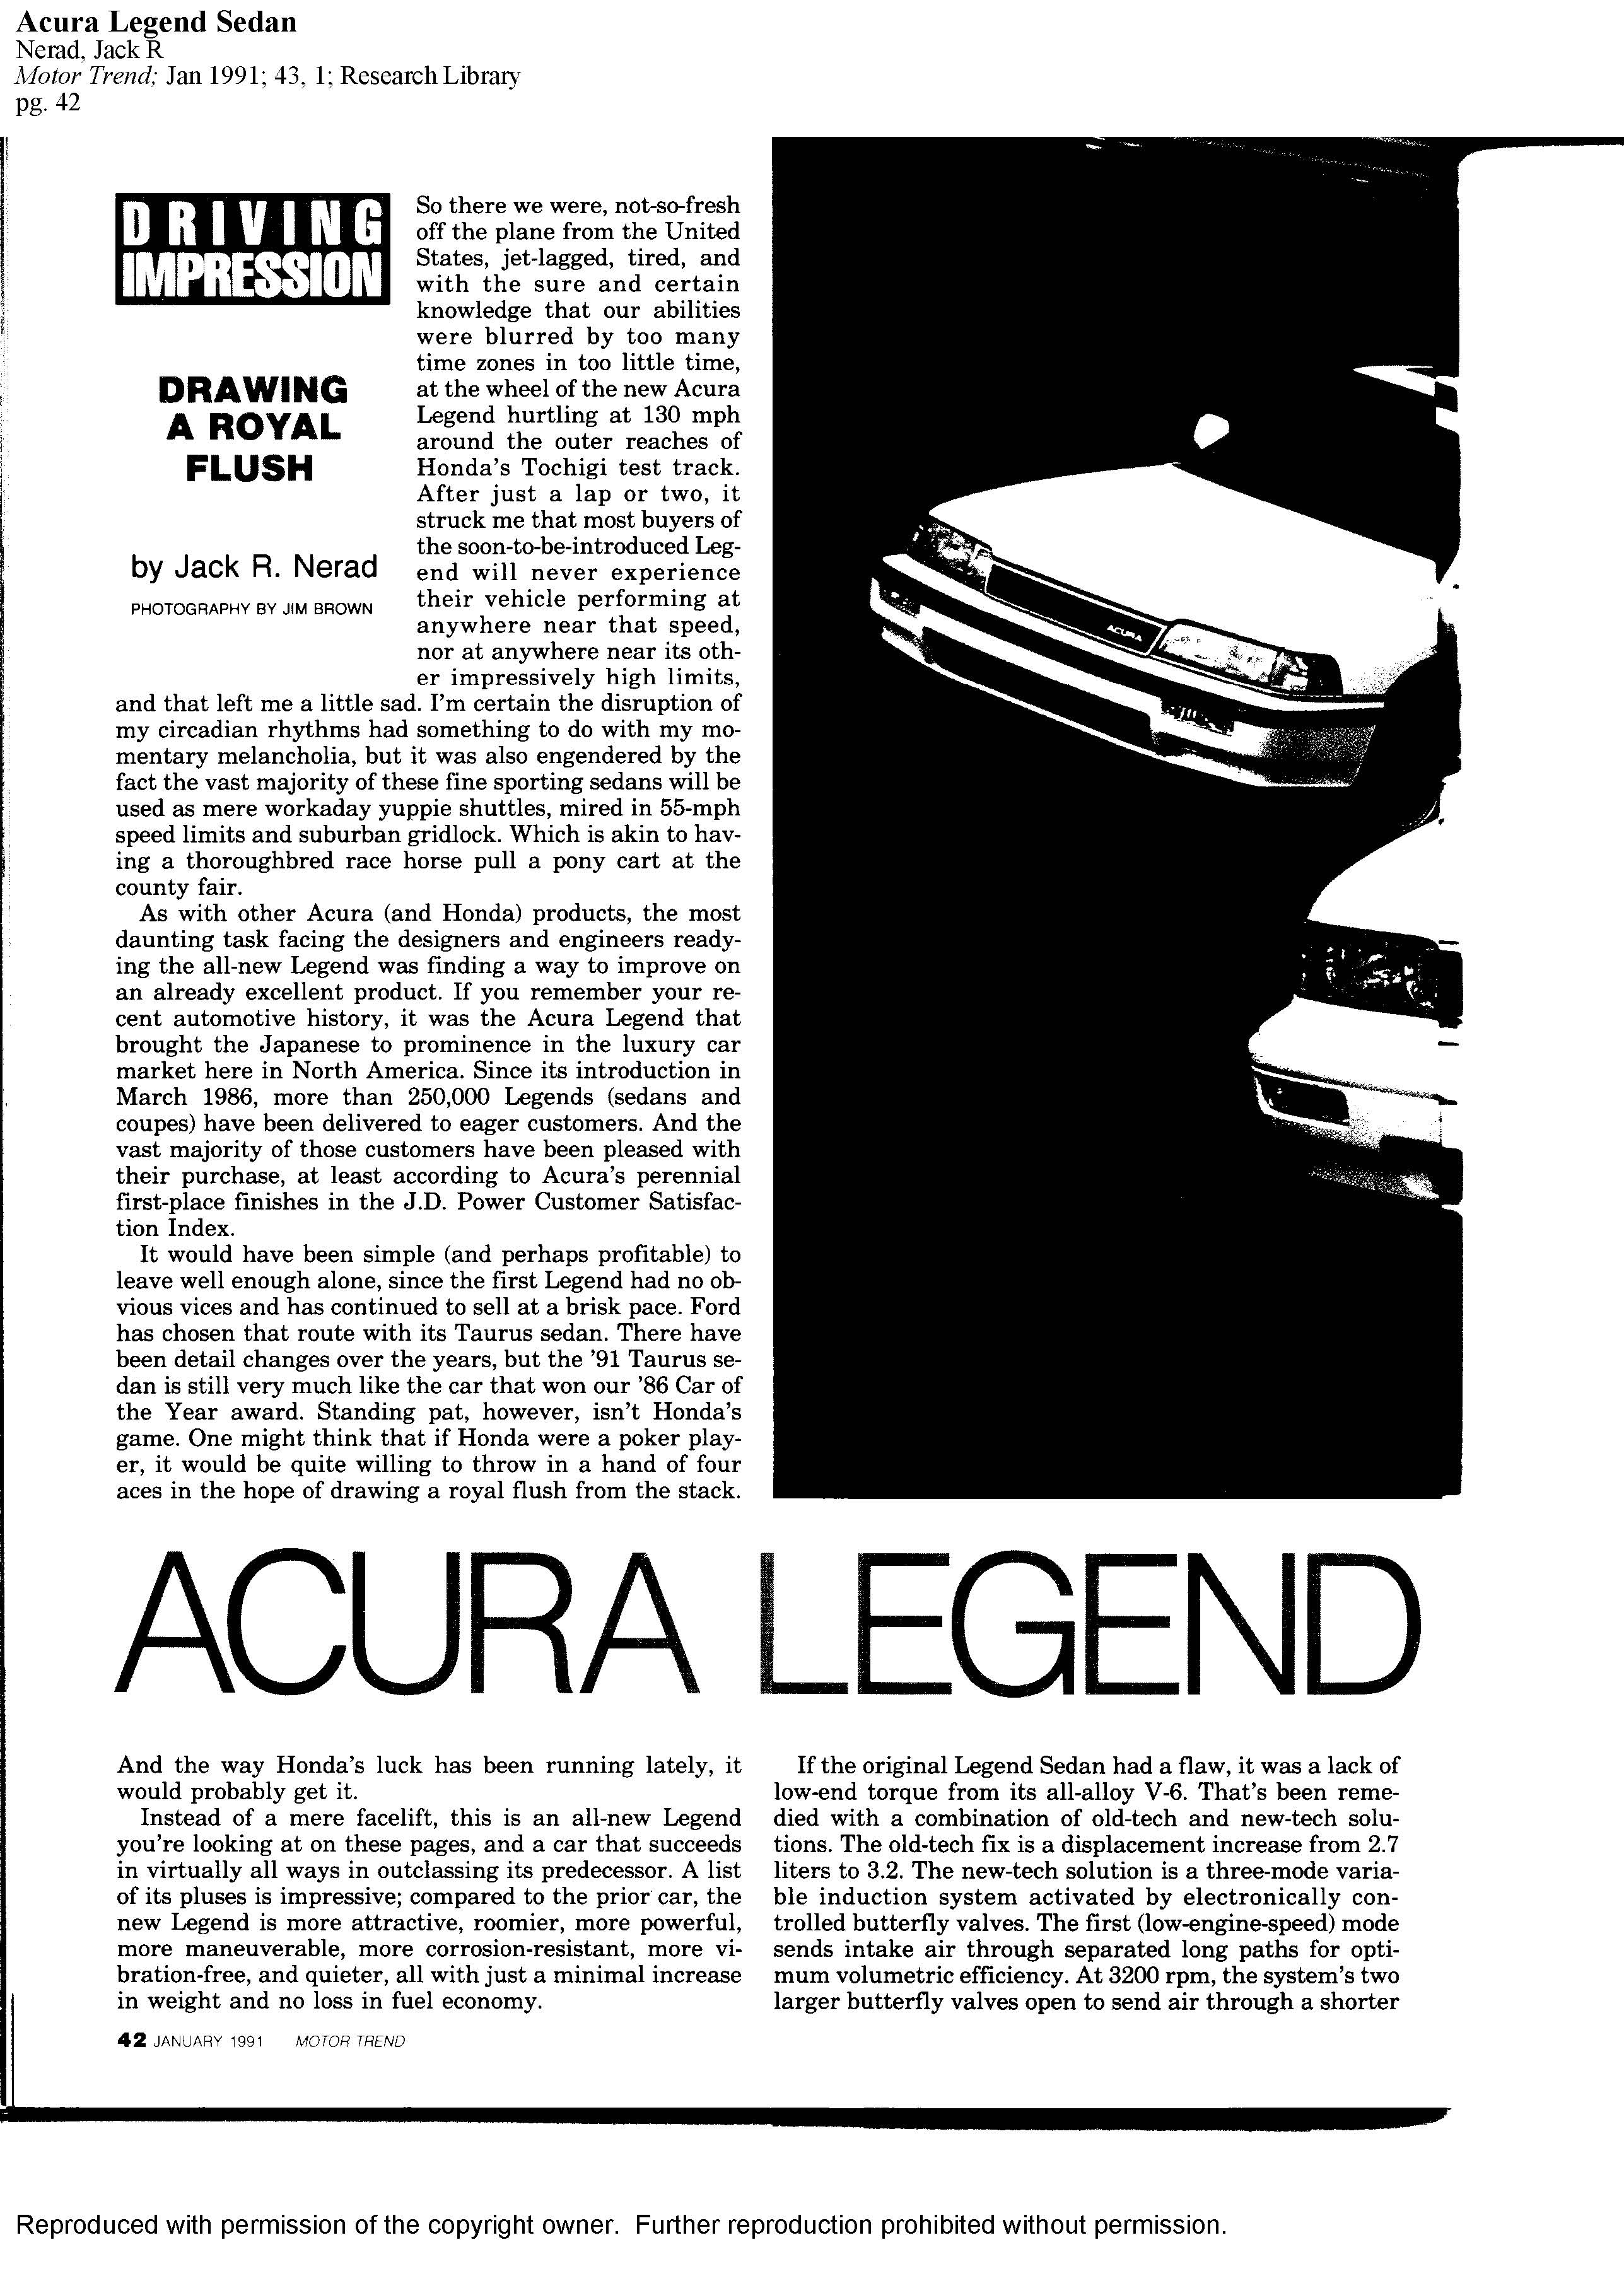 Motor Trend Drawing A Royal Flush Acura Legend Driving Impression Page on Acura Legend Forum For All Generations Of The Honda